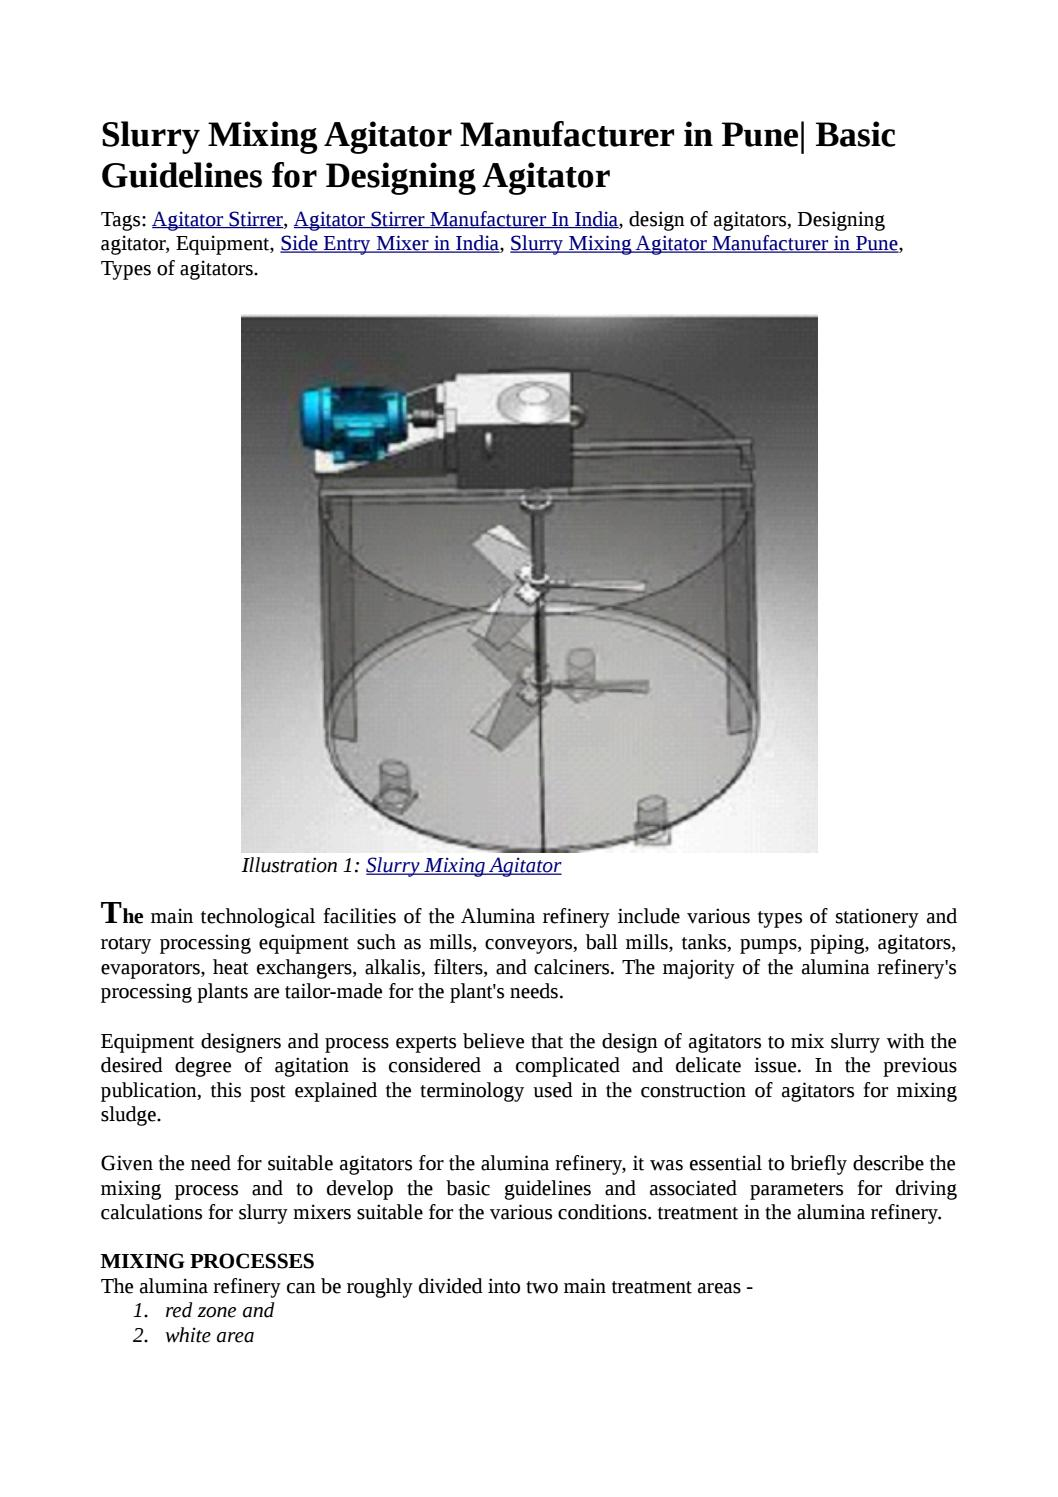 Basic guidelines for design of slurry mixing agitators by